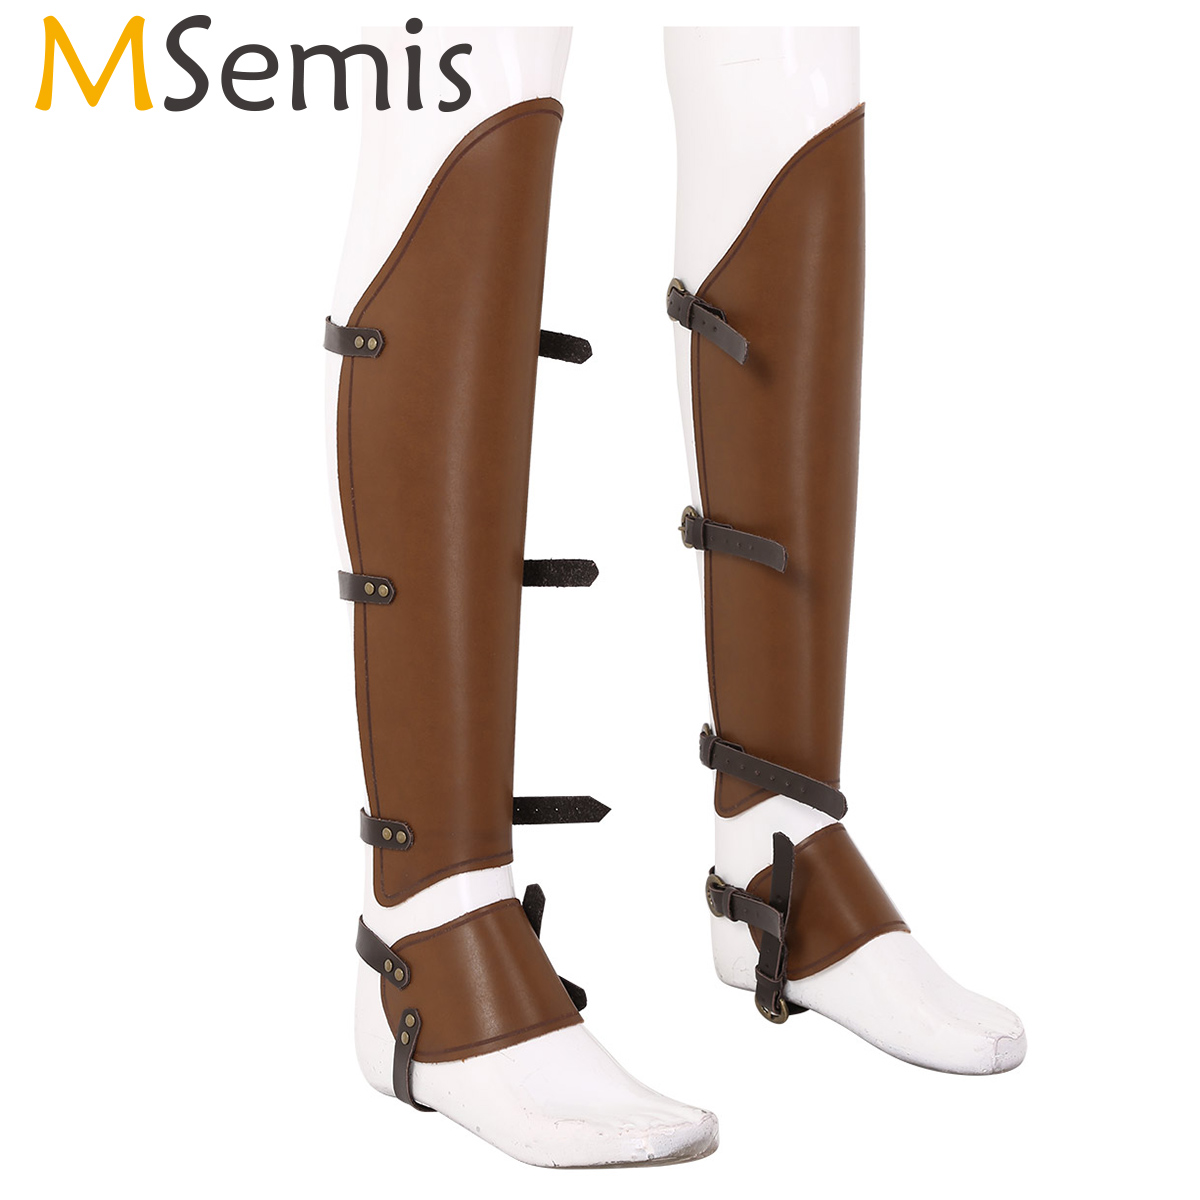 MSemis Vintage Medieval Steampunk Adjustable Leather Half Chaps Long Leg Cover Gaiter Shoe Spats Boot Covers Cavalier Accessory